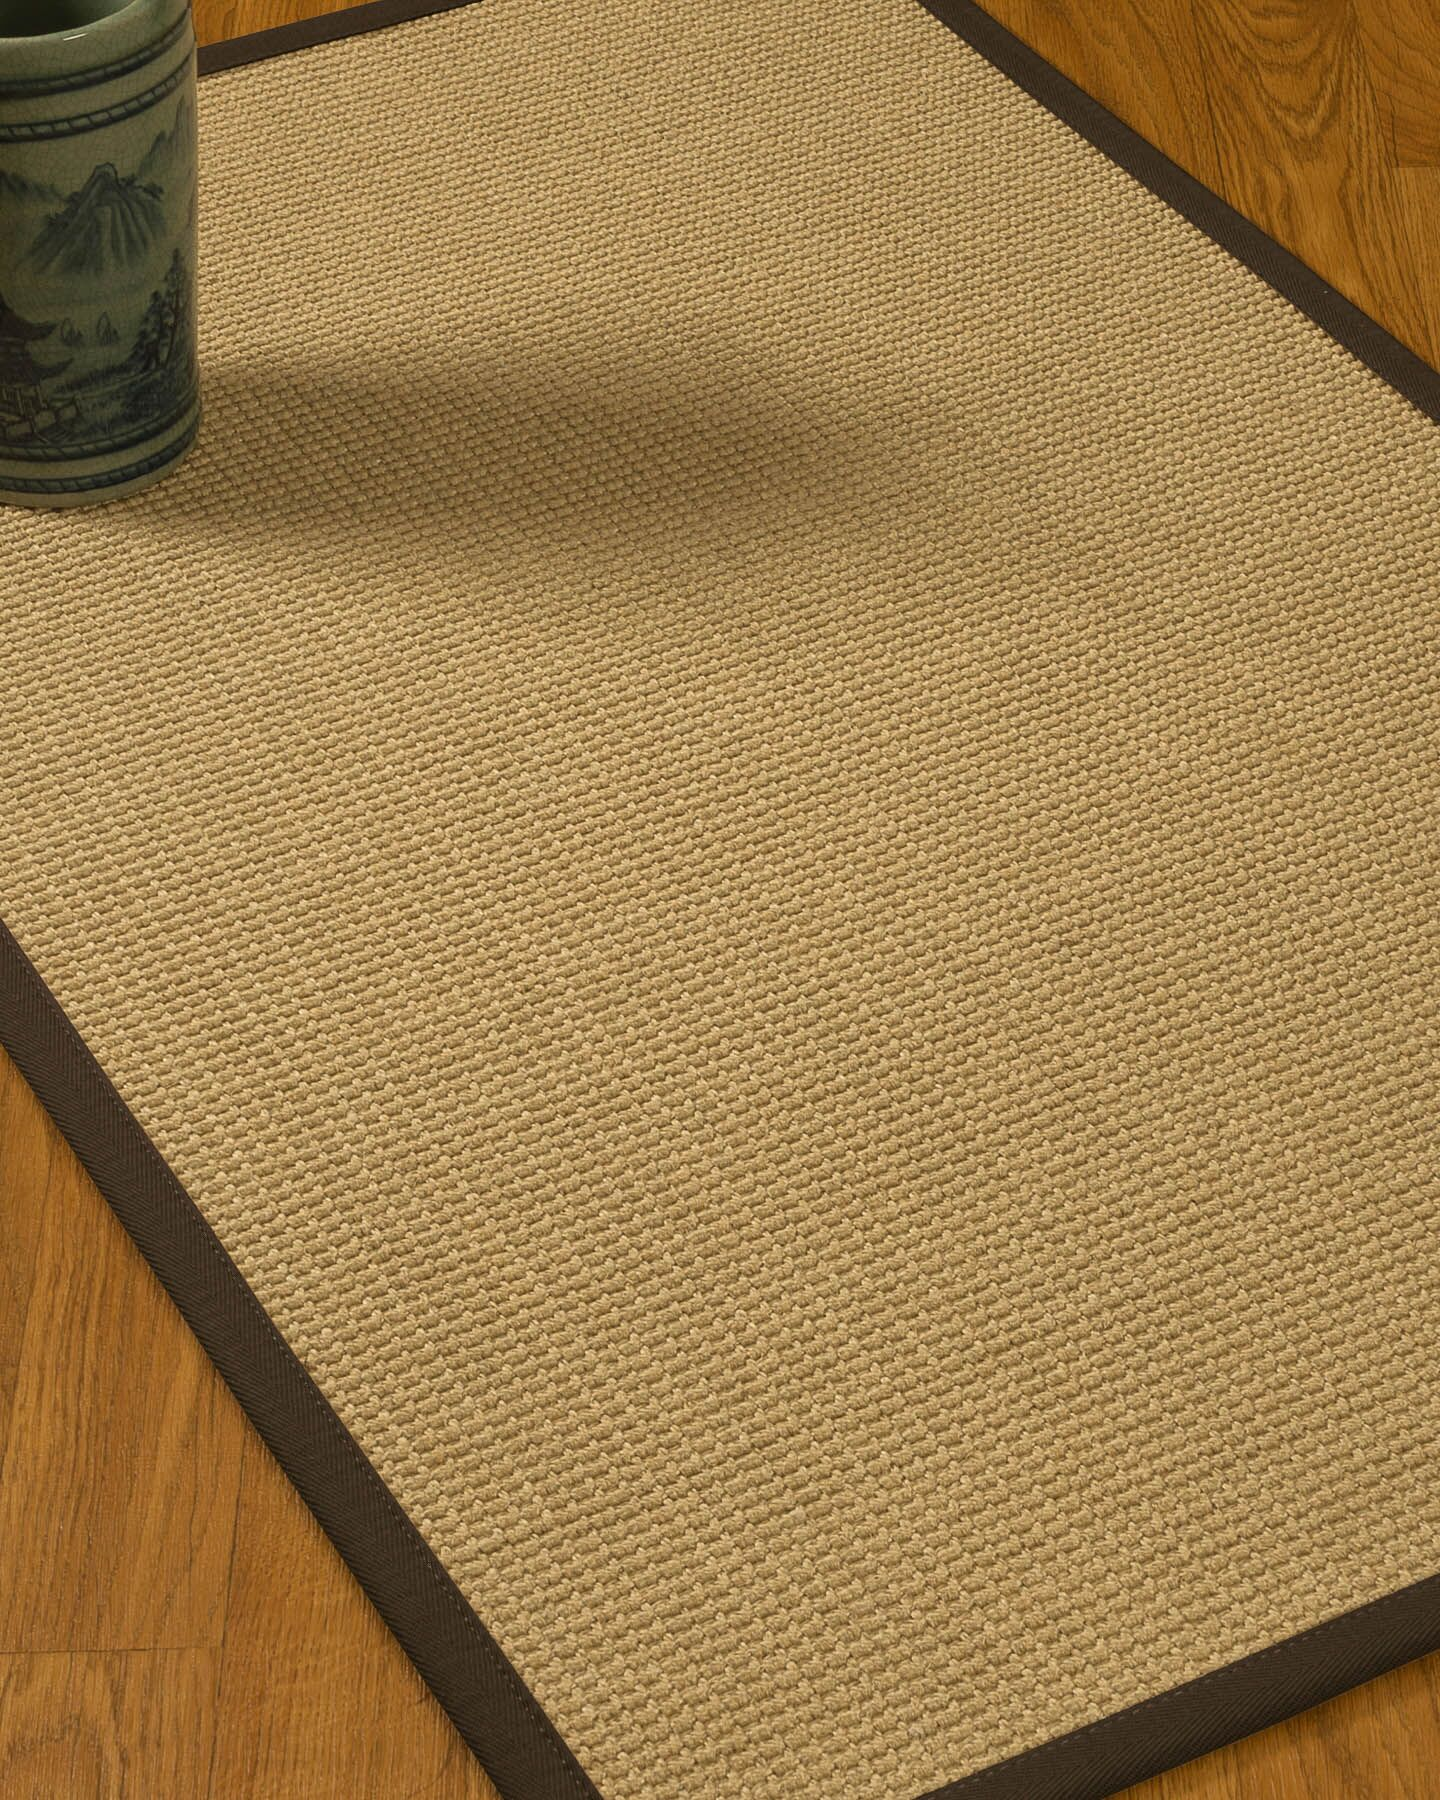 Jacobs Border Hand-Woven Beige/Fudge Area Rug Rug Size: Rectangle 8' x 10', Rug Pad Included: Yes